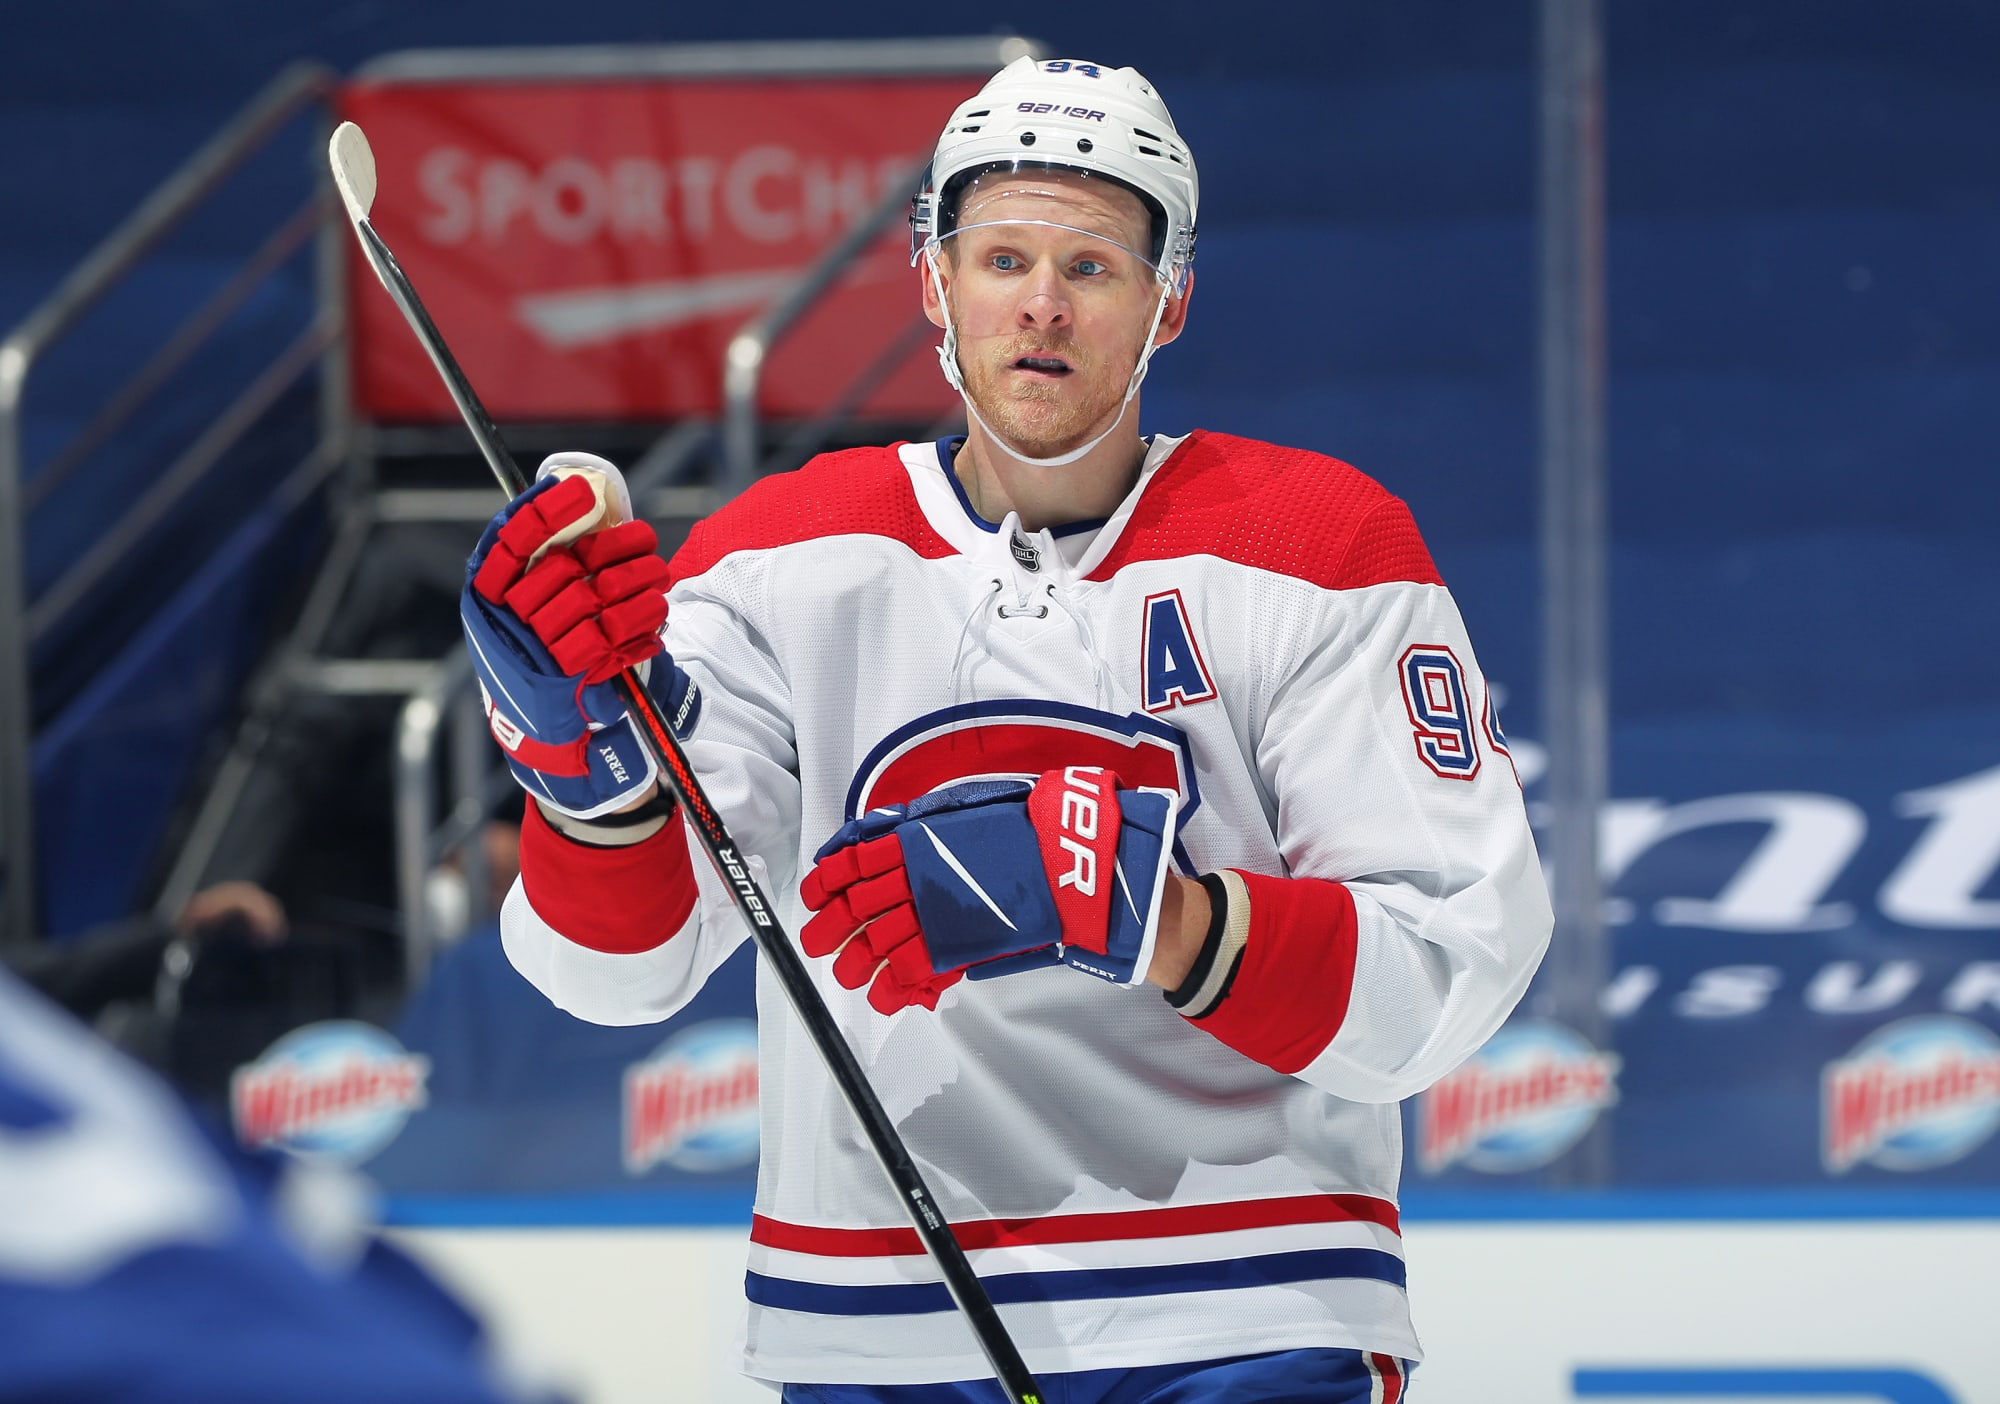 Montreal Canadiens: Corey Perry Nominated For Bill Masterton Trophy